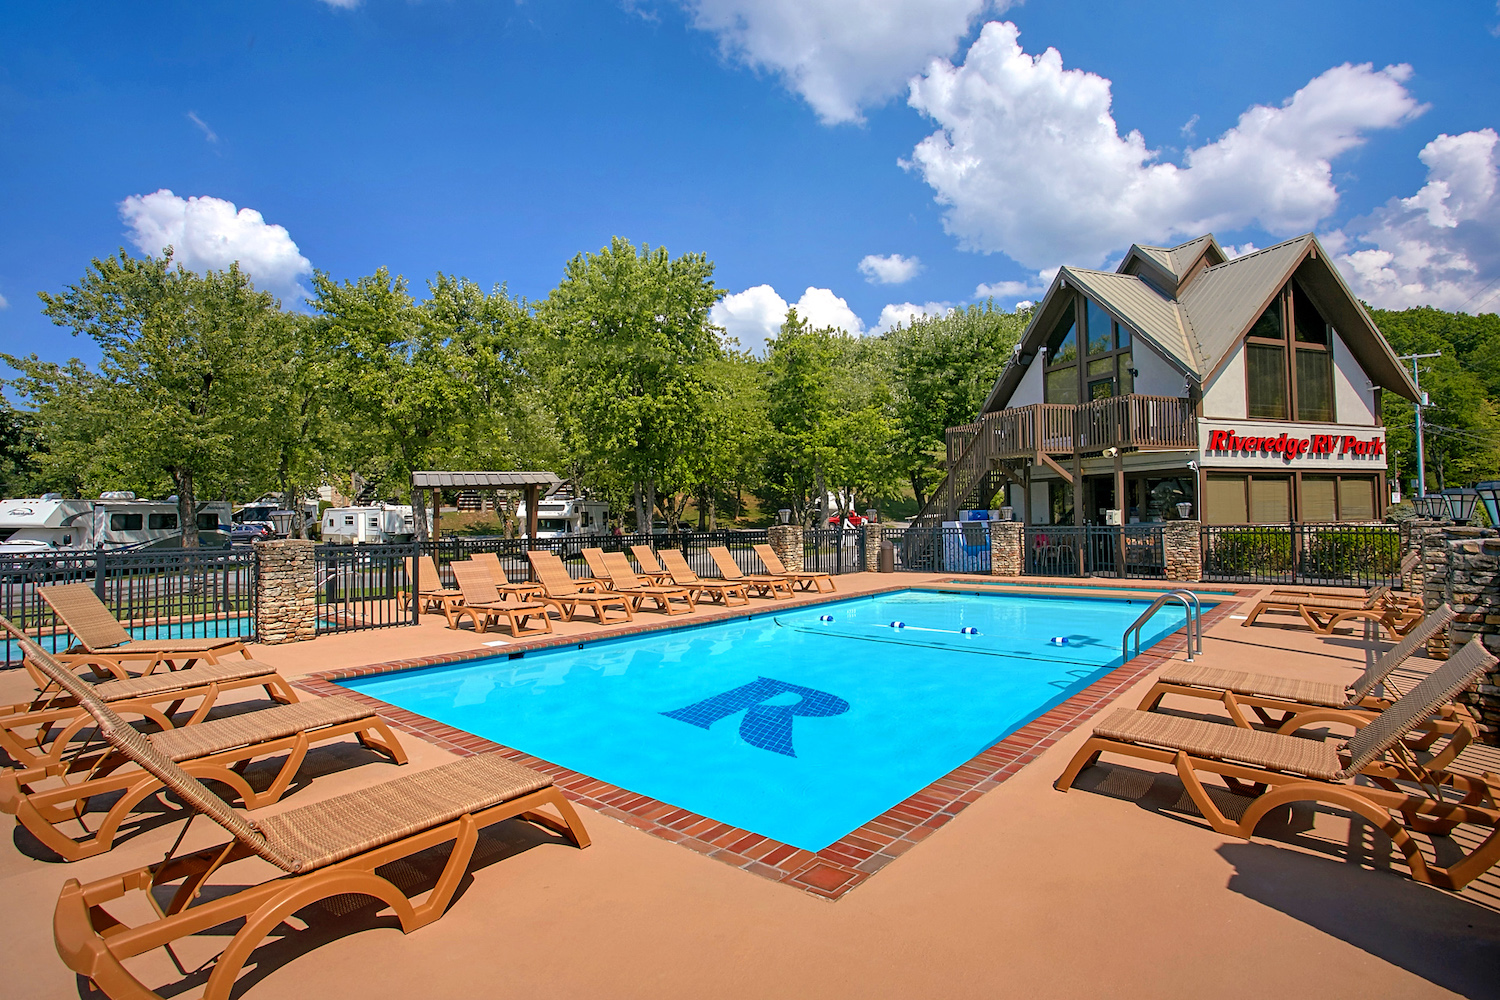 Pool view of RV Park in Pigeon Forge